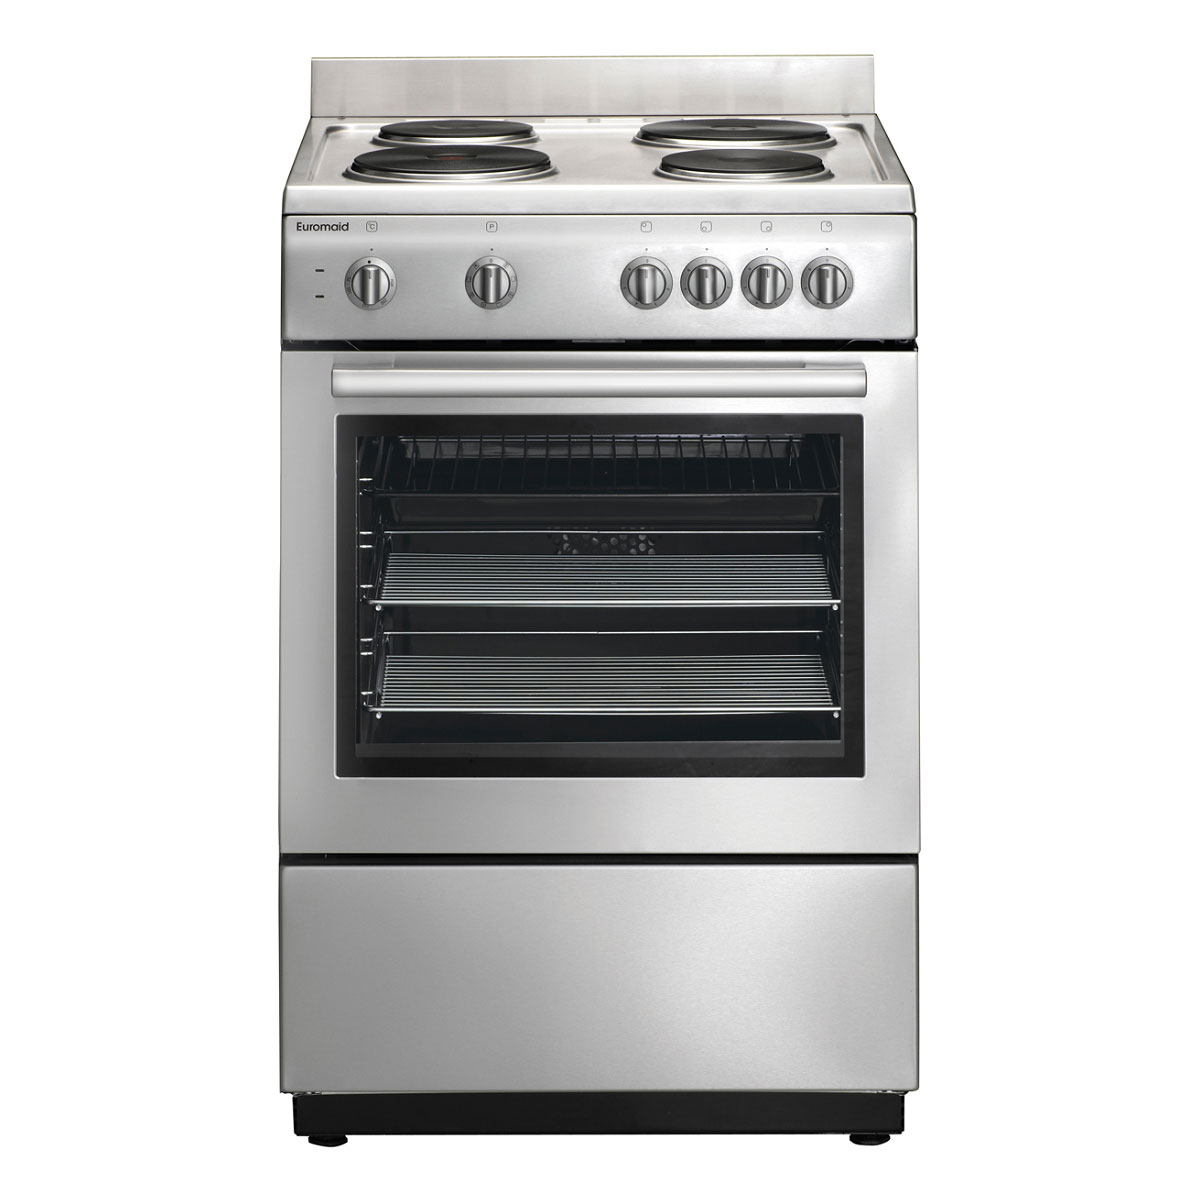 Euromaid ES60 Freestanding Electric Oven/Stove